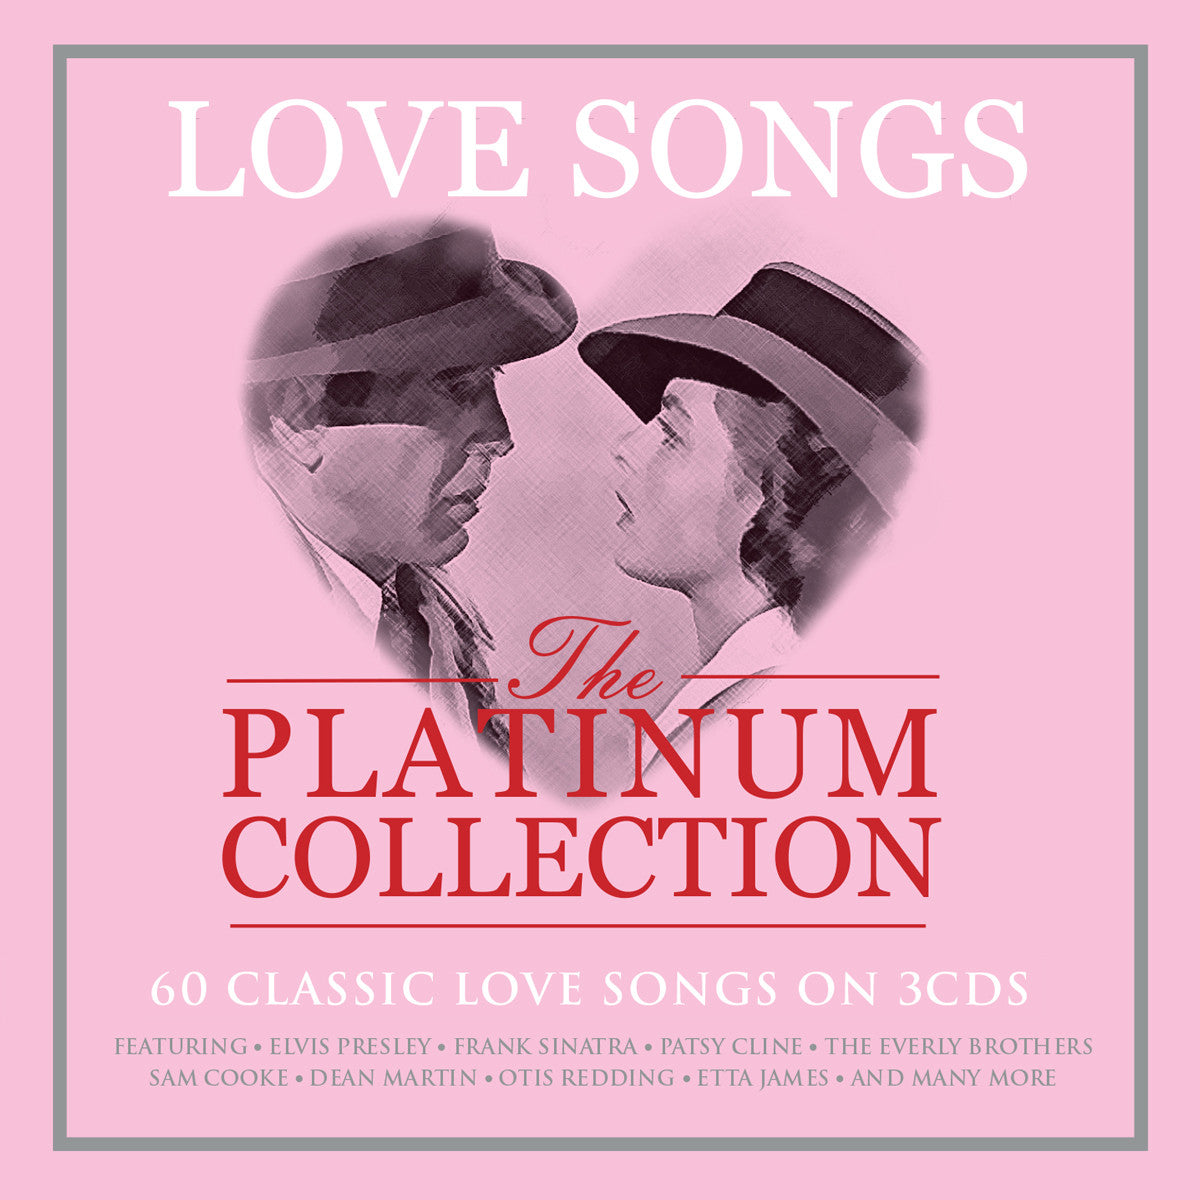 LOVE SONGS - THE PLATINUM COLLECTION (3 CDs)